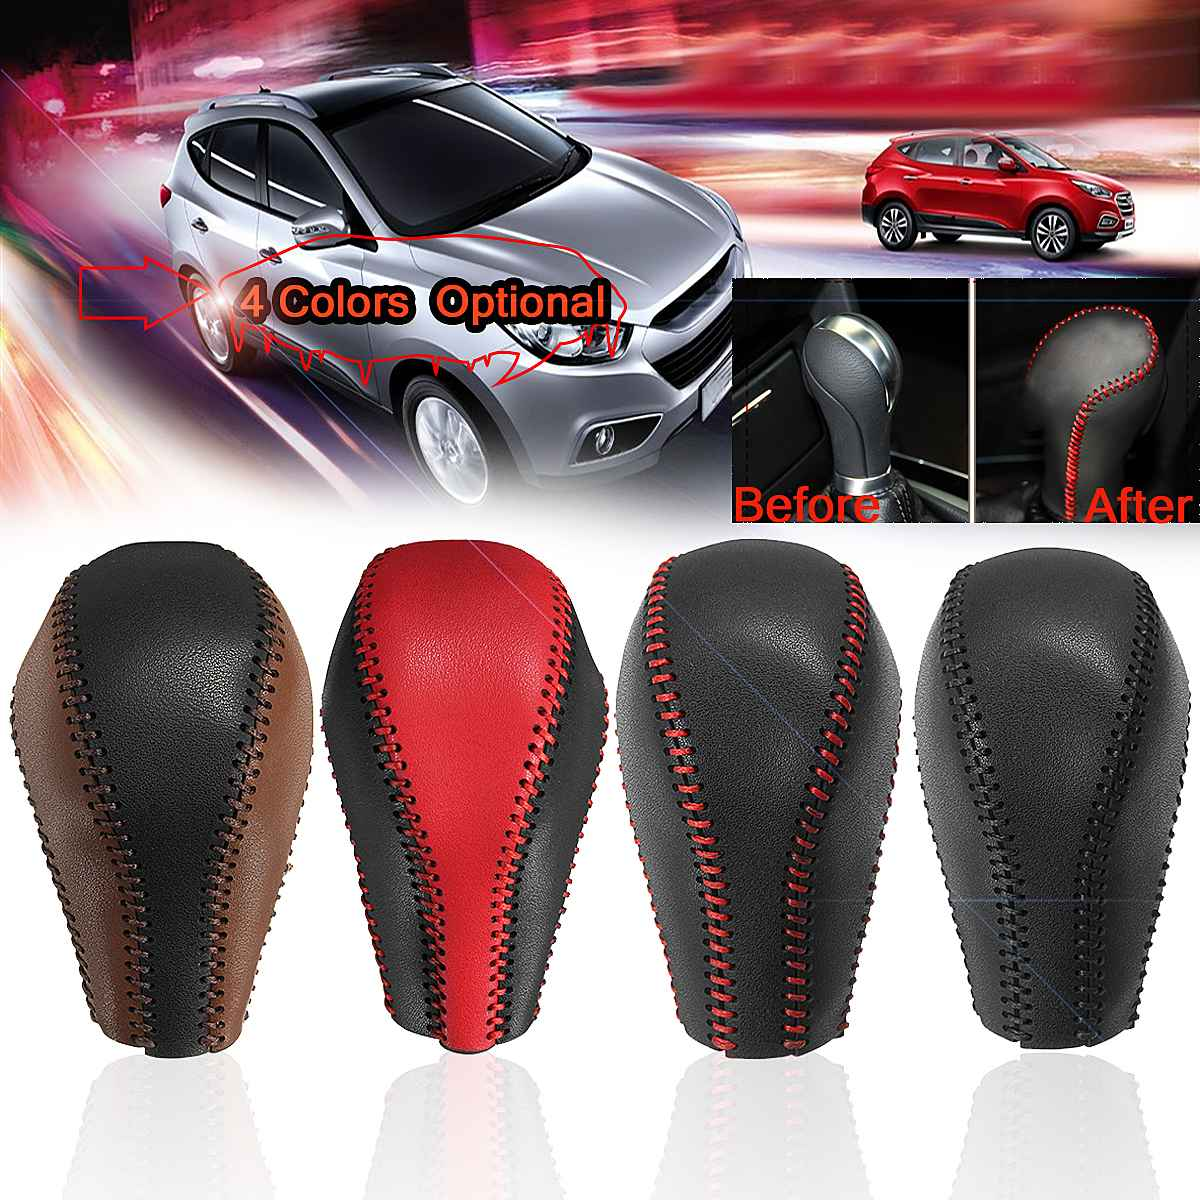 Car Gear Shift Knob Handle Cover PU Leather Auto Styling Interior <font><b>Accessories</b></font> For <font><b>Infiniti</b></font> QX50 QX70 <font><b>QX80</b></font> EX FX image